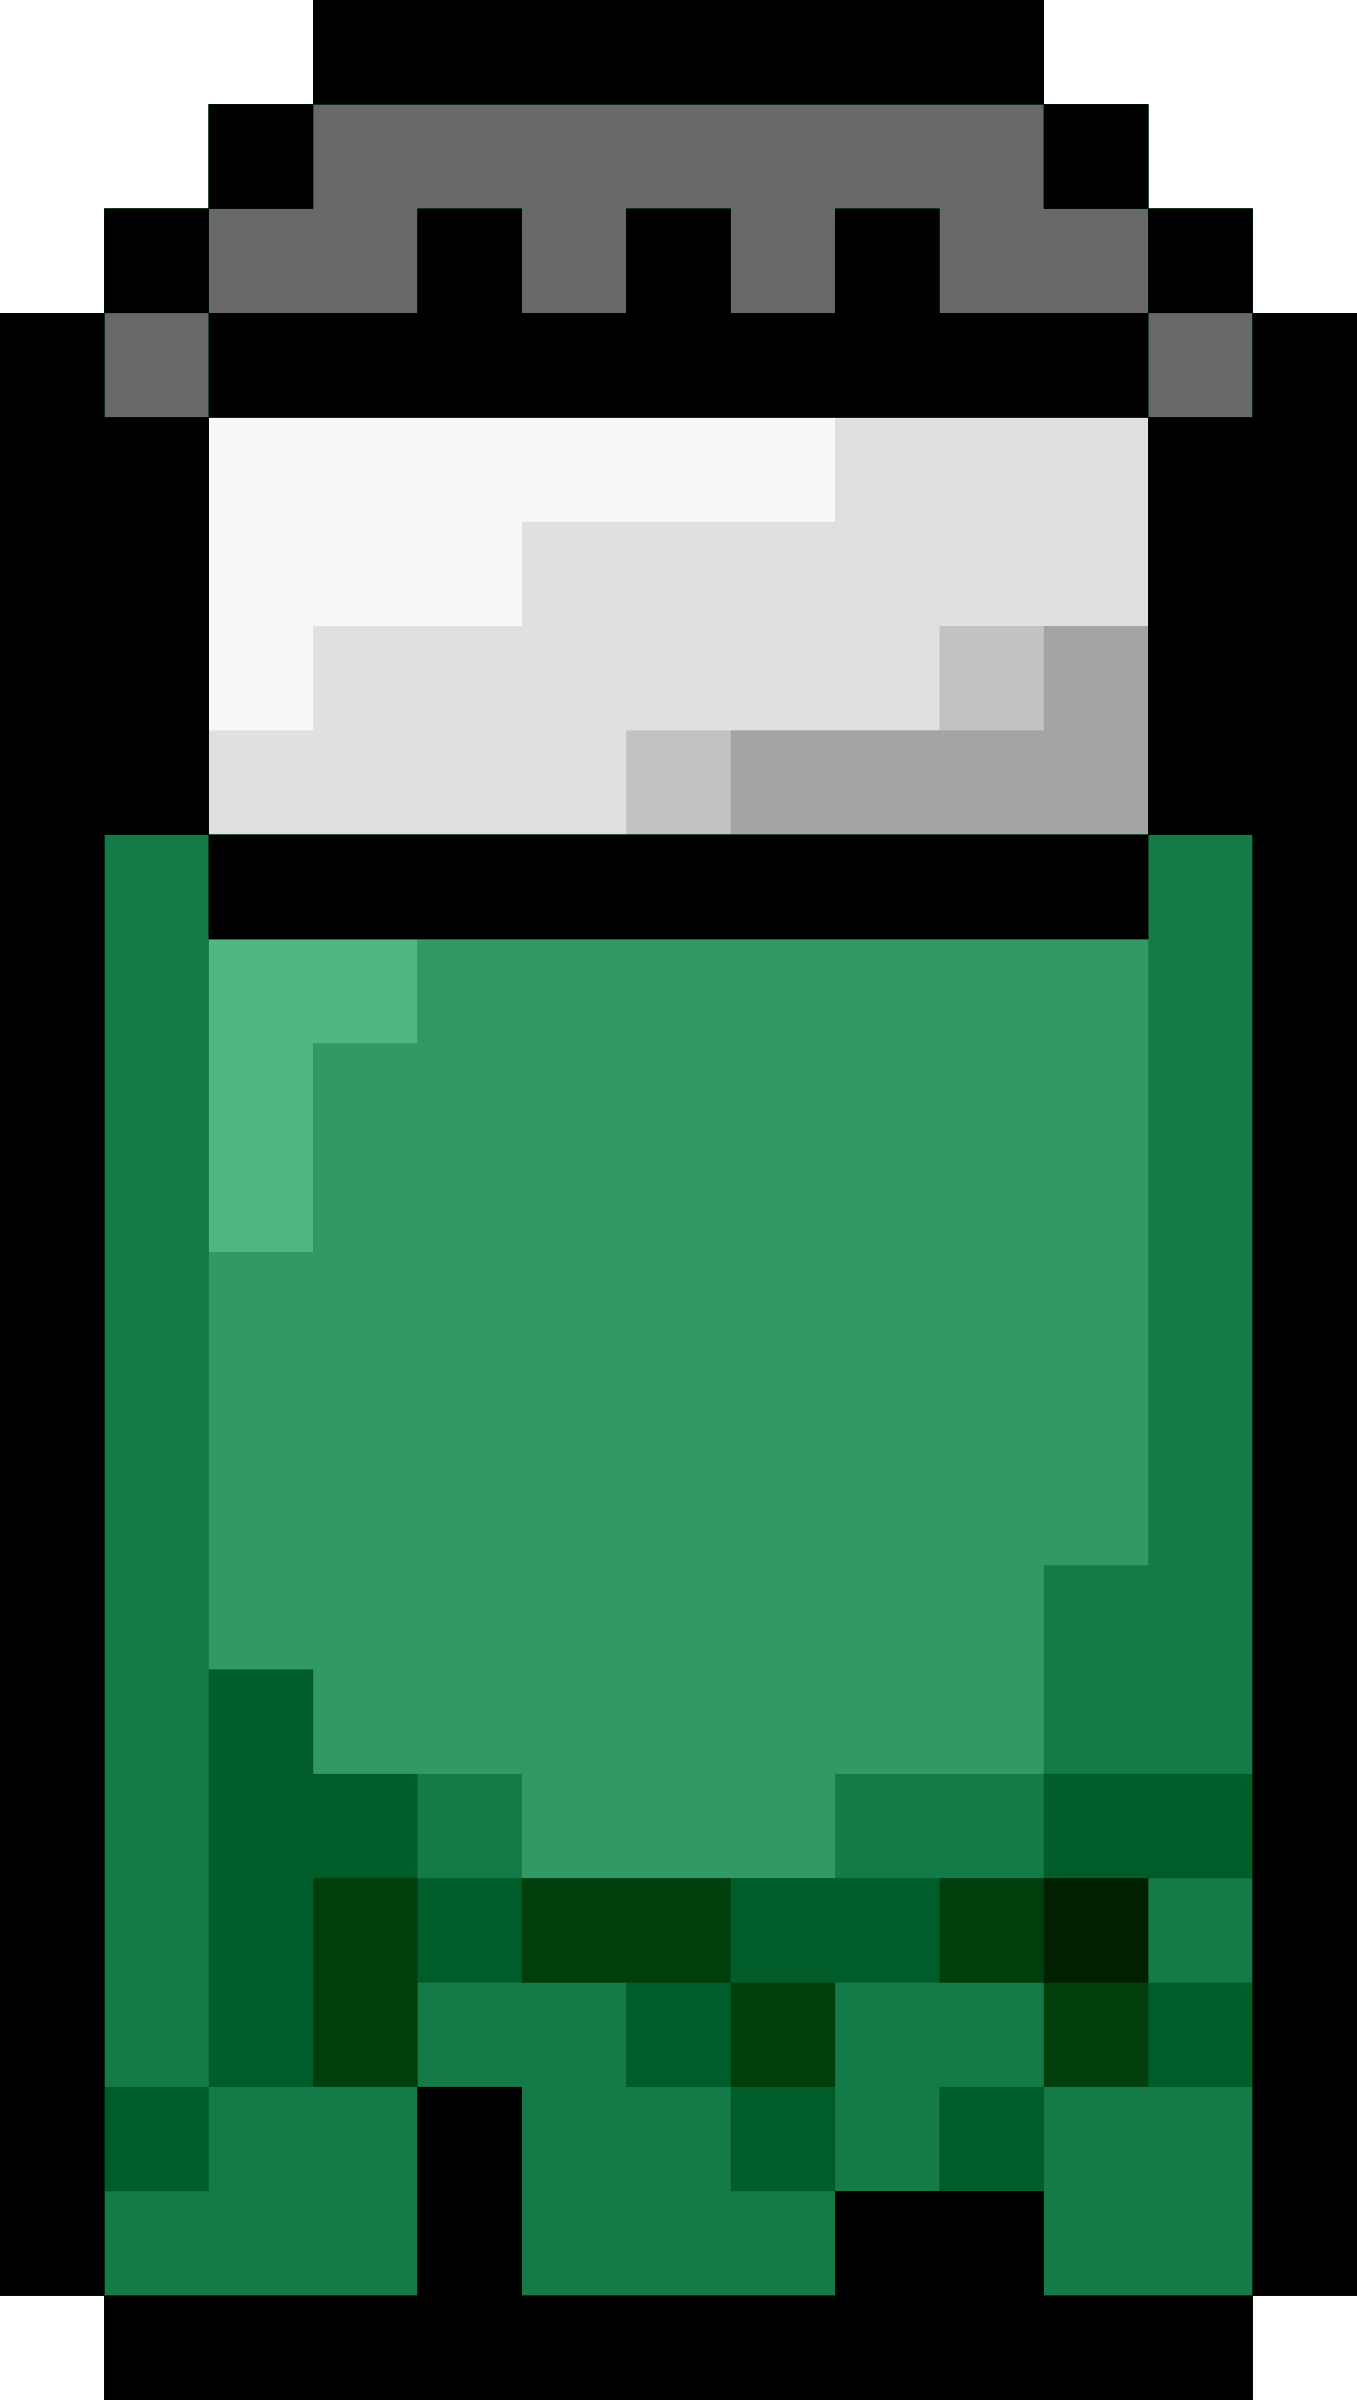 Pixel Bed Green Front by isaiah658